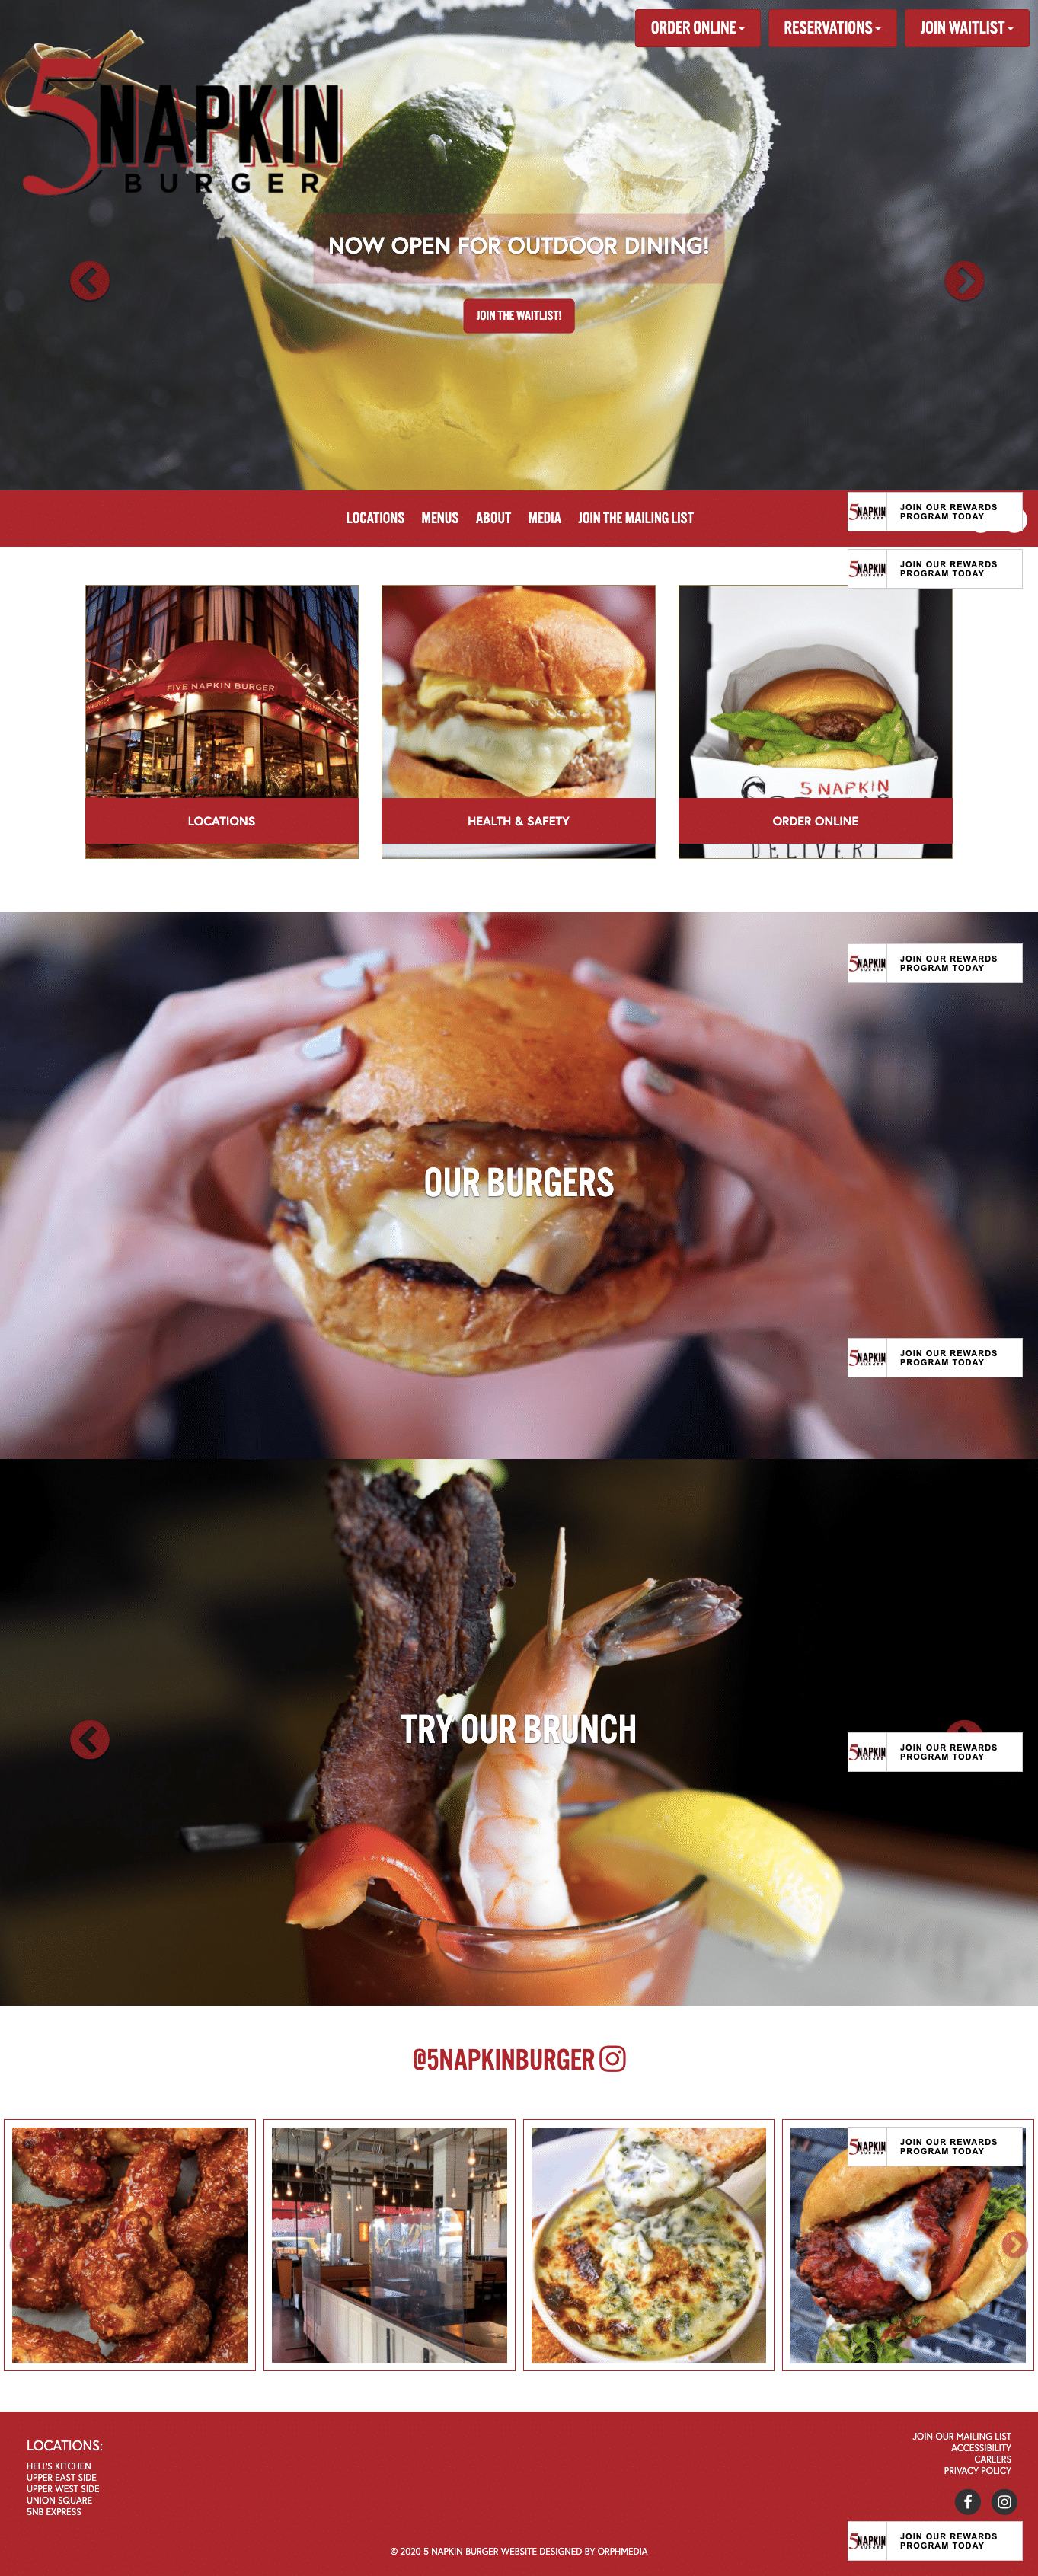 5 napkin burger website